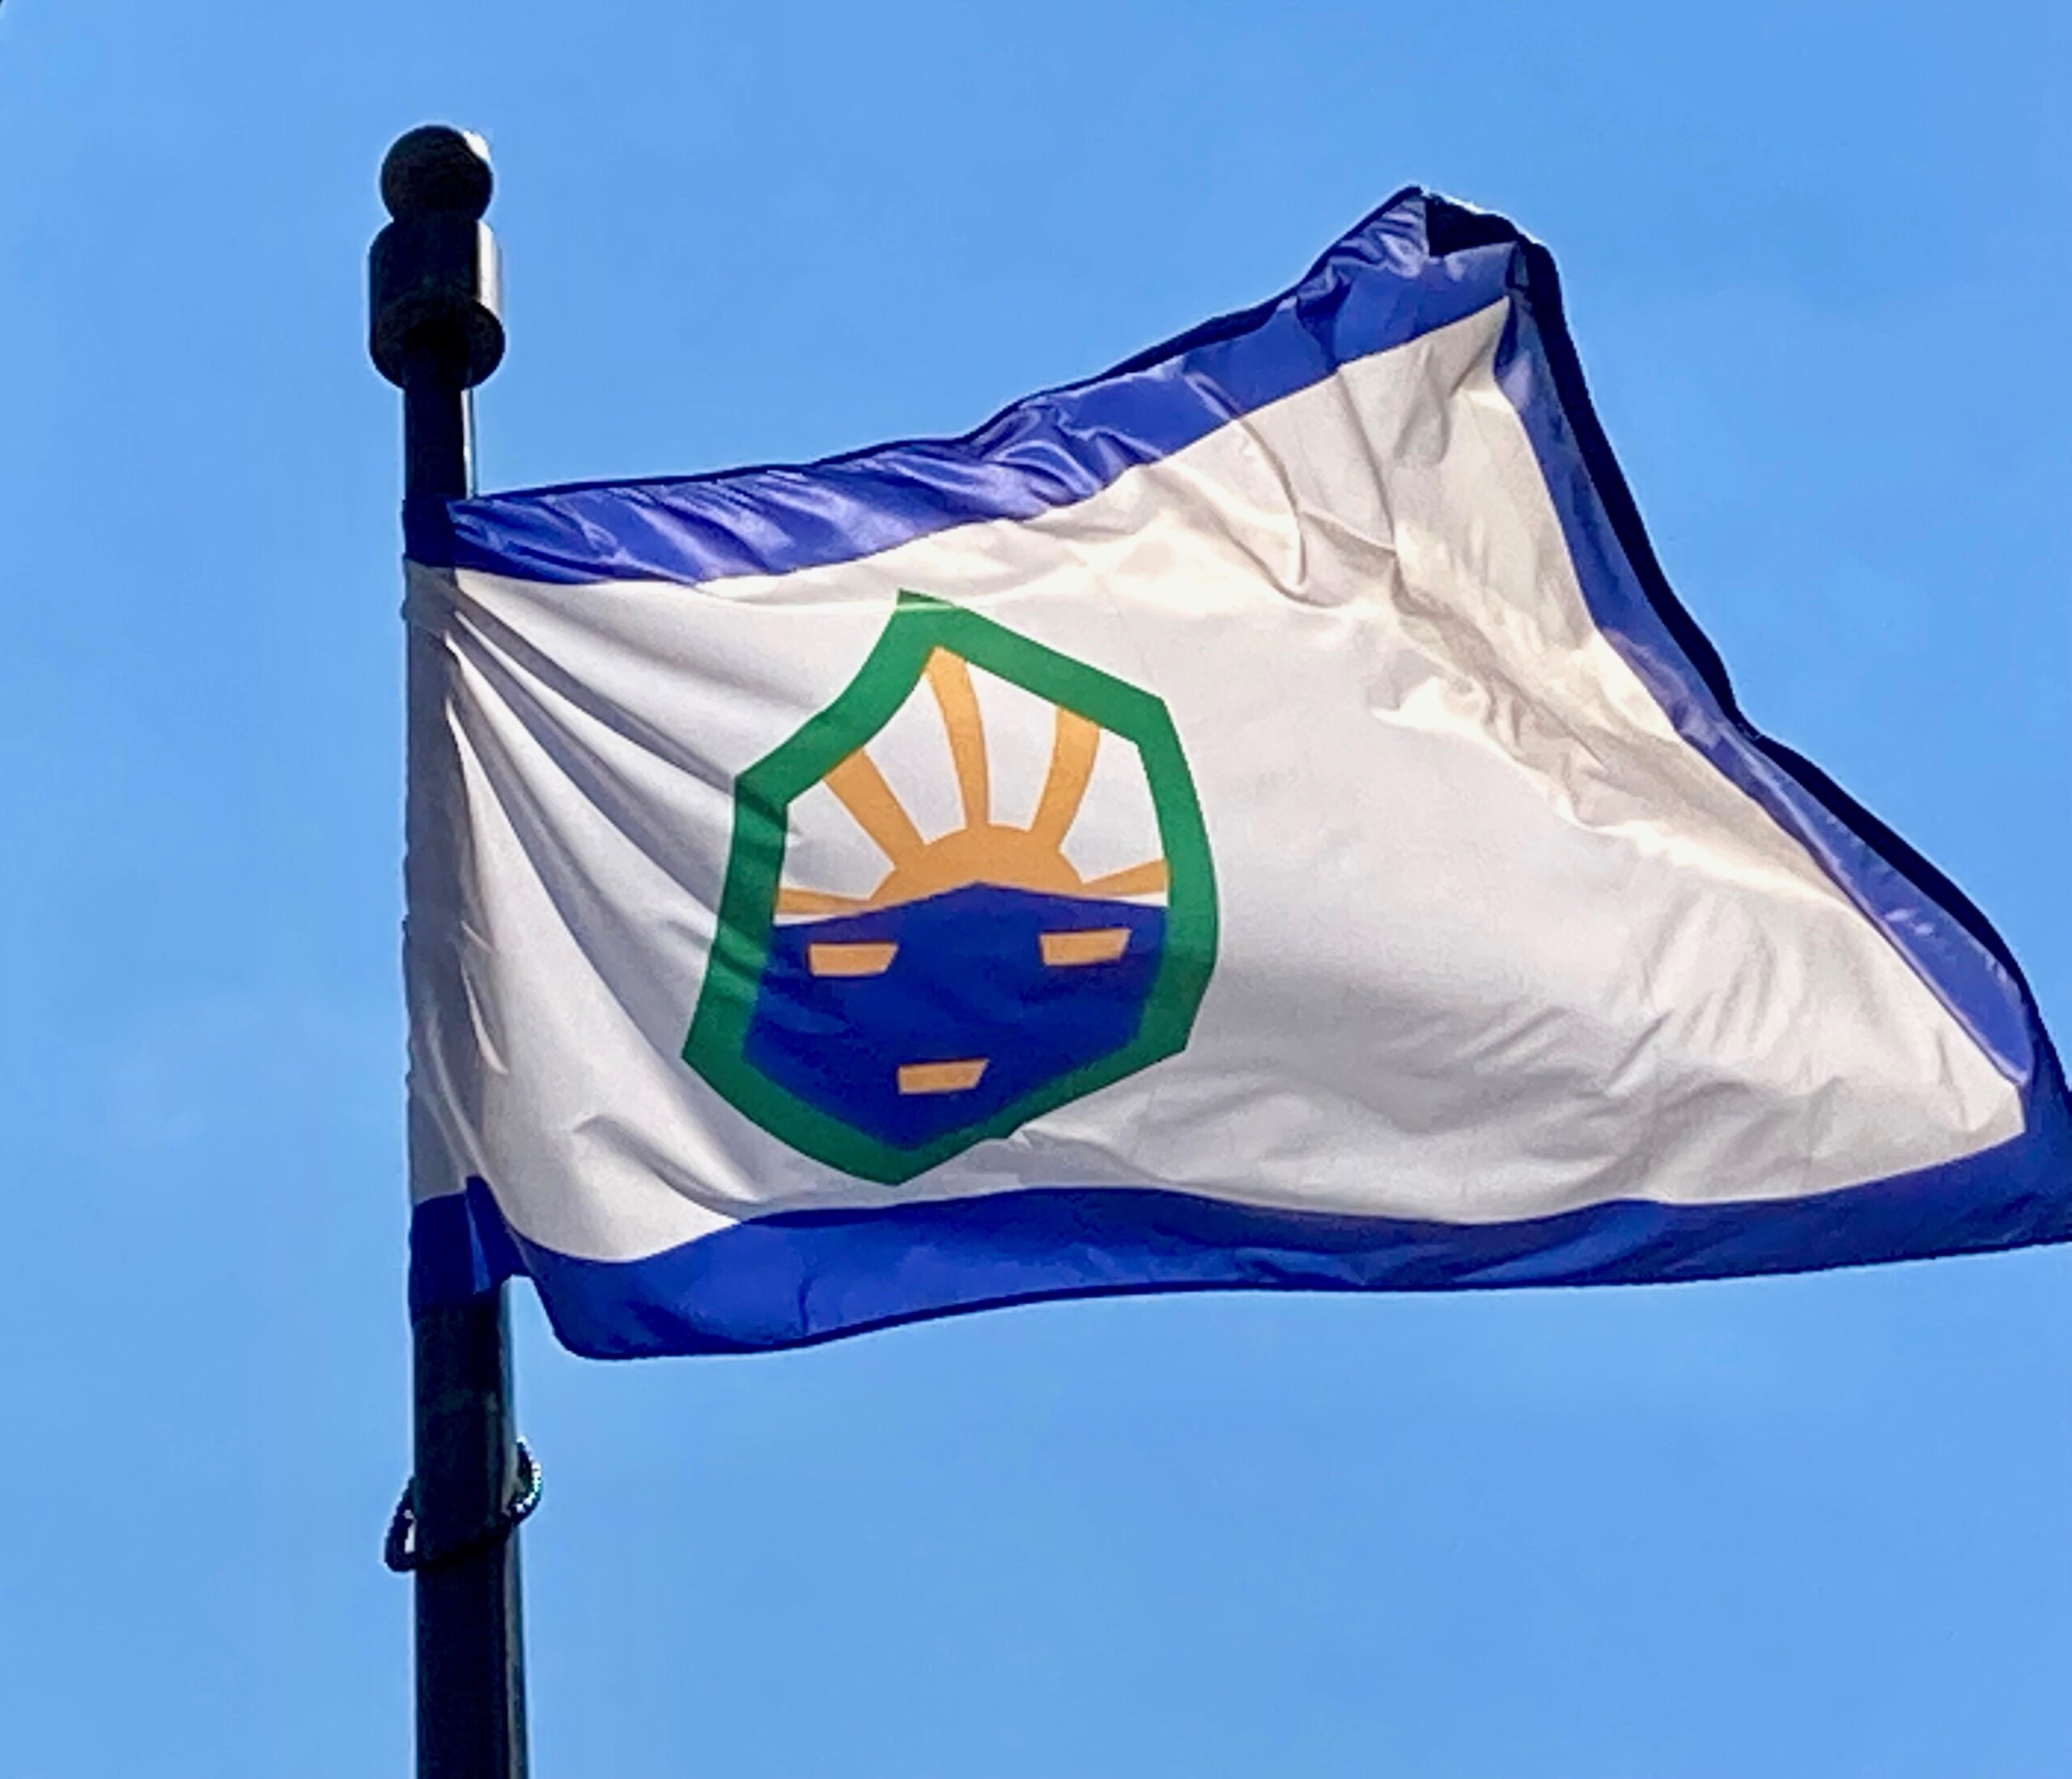 The Colorado Springs city flag flies outside the City Administration building in July 2021.